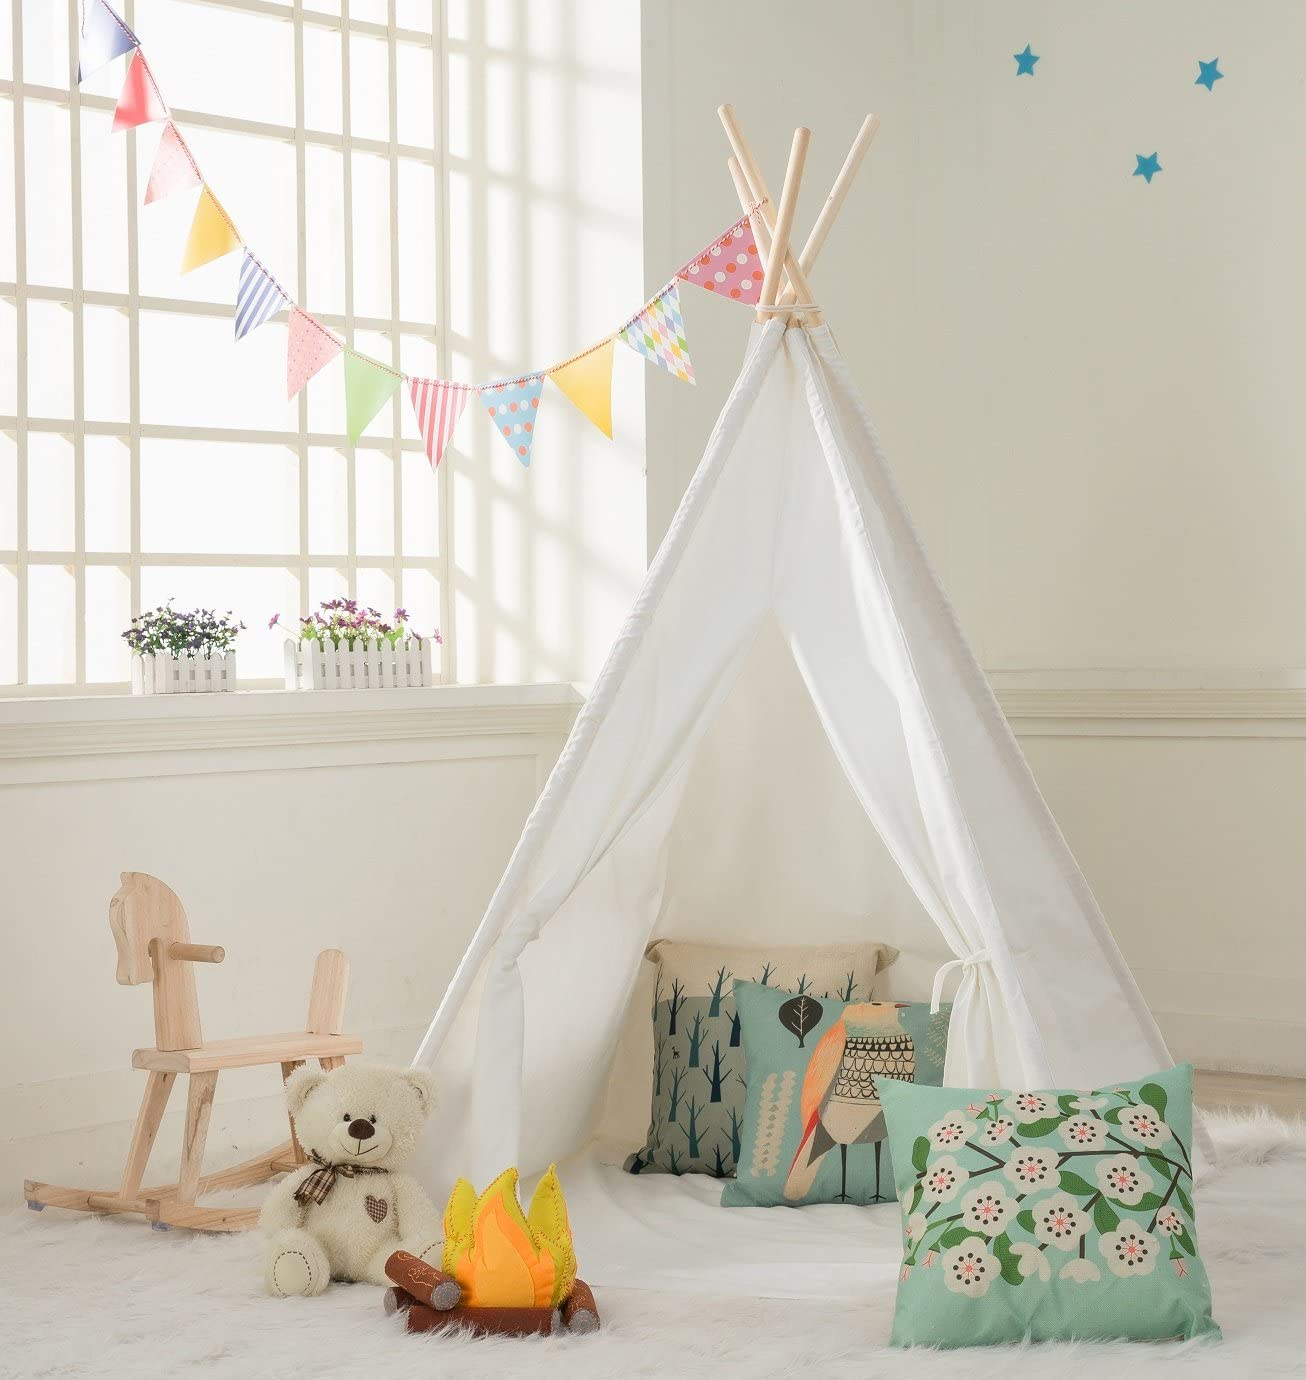 Top 15 Best Kids Teepee Tents (2020 Reviews & Buying Guide) 9